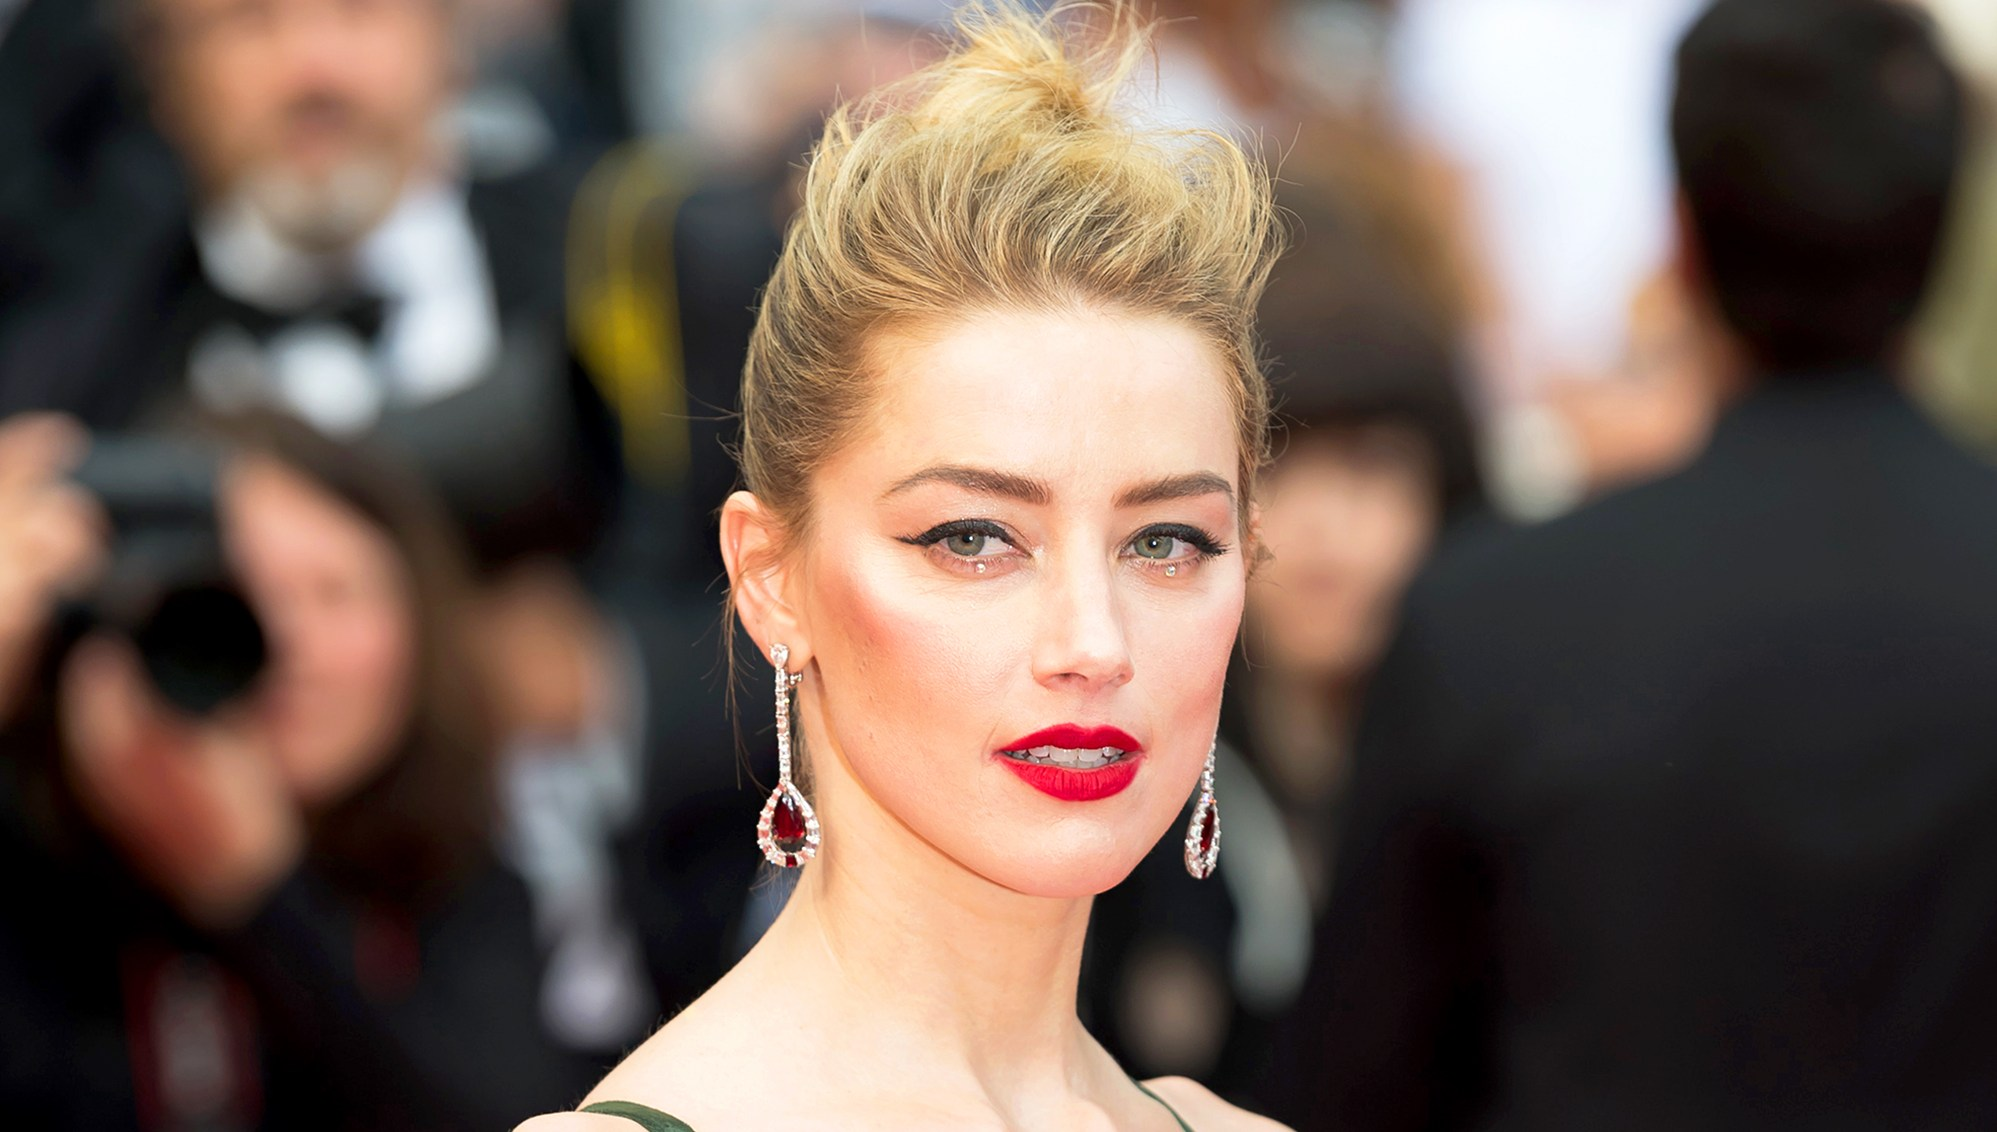 Amber Heard attends the screening of 'Sorry Angel' during the 71st annual Cannes Film Festival at Palais des Festivals in Cannes, France.